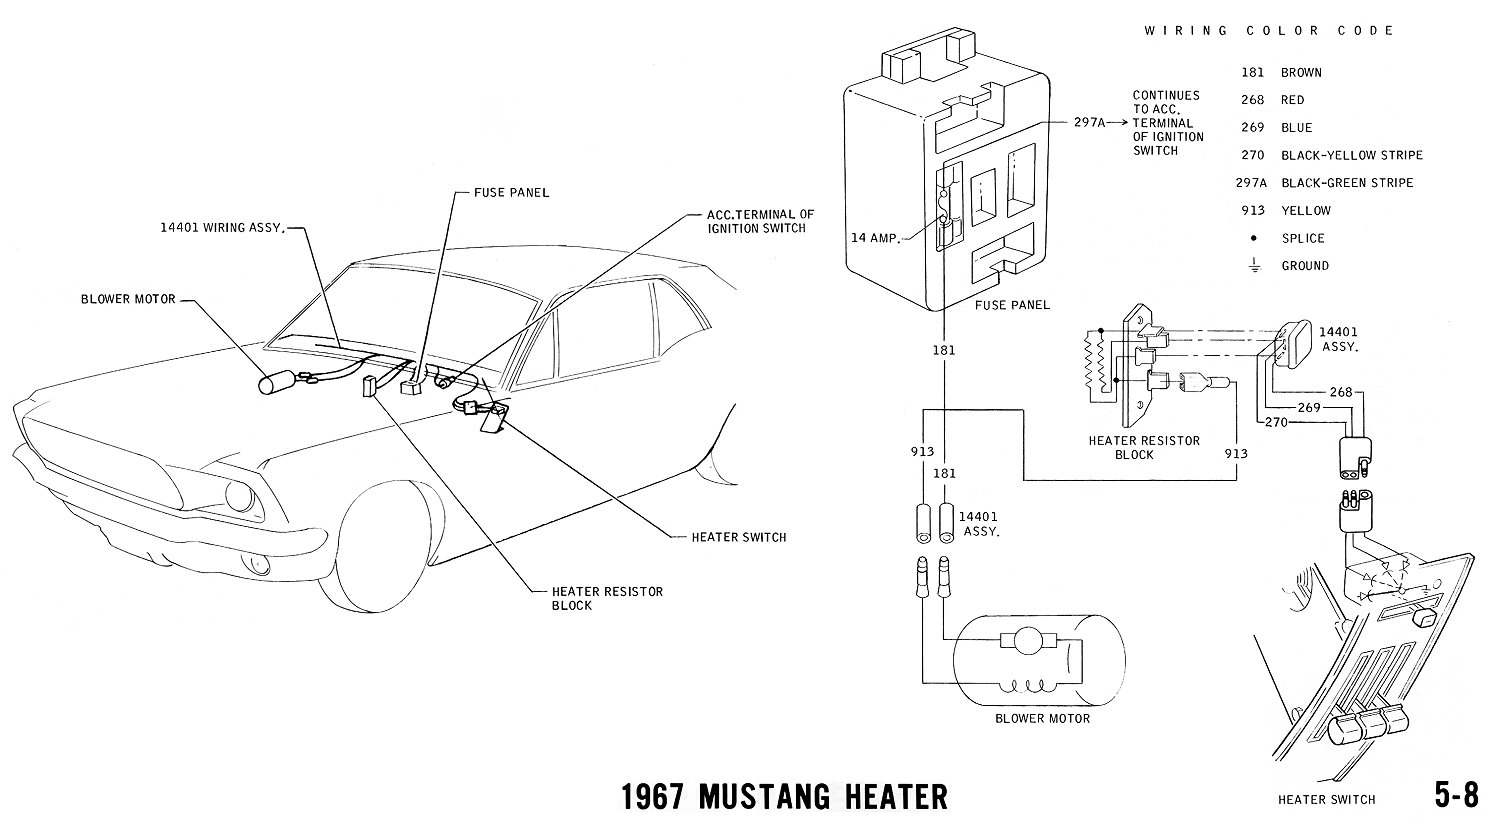 67 Mustang Ammeter Wiring Diagram - 3.5.derma-lift.de • on 1971 mustang wiring schematic, 2001 mustang wiring schematic, 1965 mustang steering schematic, 1964 mustang wiring schematic, 2005 mustang wiring schematic, 1967 mustang wiring schematic, 1968 mustang wiring schematic, 1957 chevrolet truck wiring schematic, 1967 gto wiring schematic, 2000 mustang wiring schematic, ford wiring schematic, 2006 mustang wiring schematic, 1967 camaro wiring schematic, 1966 mustang wiring schematic, 1970 mustang wiring schematic, 2008 mustang wiring schematic, 66 mustang wiring schematic, 65 mustang wiring schematic, 1969 camaro wiring schematic, 2002 mustang wiring schematic,